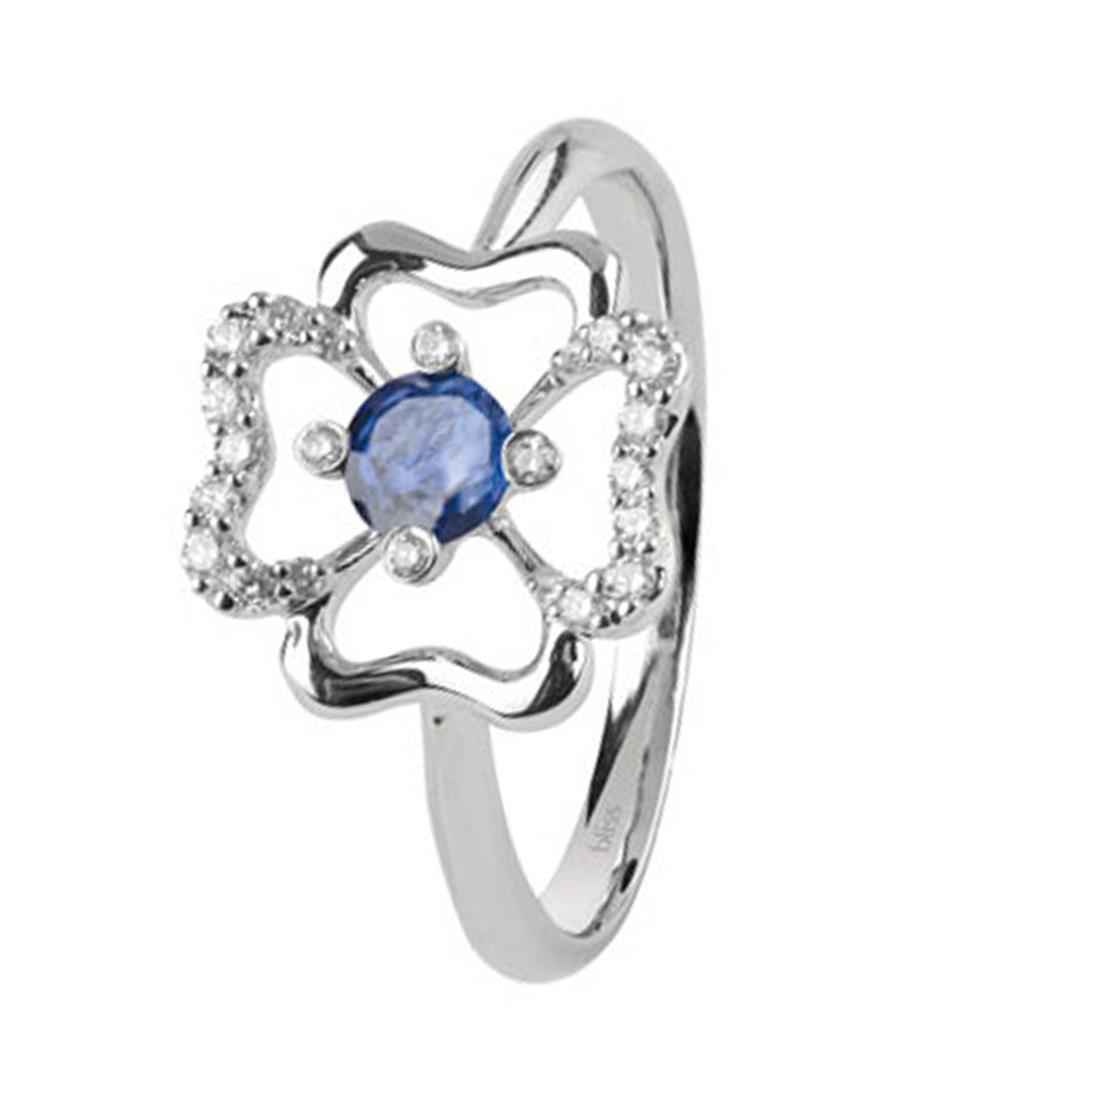 Anello con diamanti 0.11 ct e zaffiro 0.25 ct - BLISS